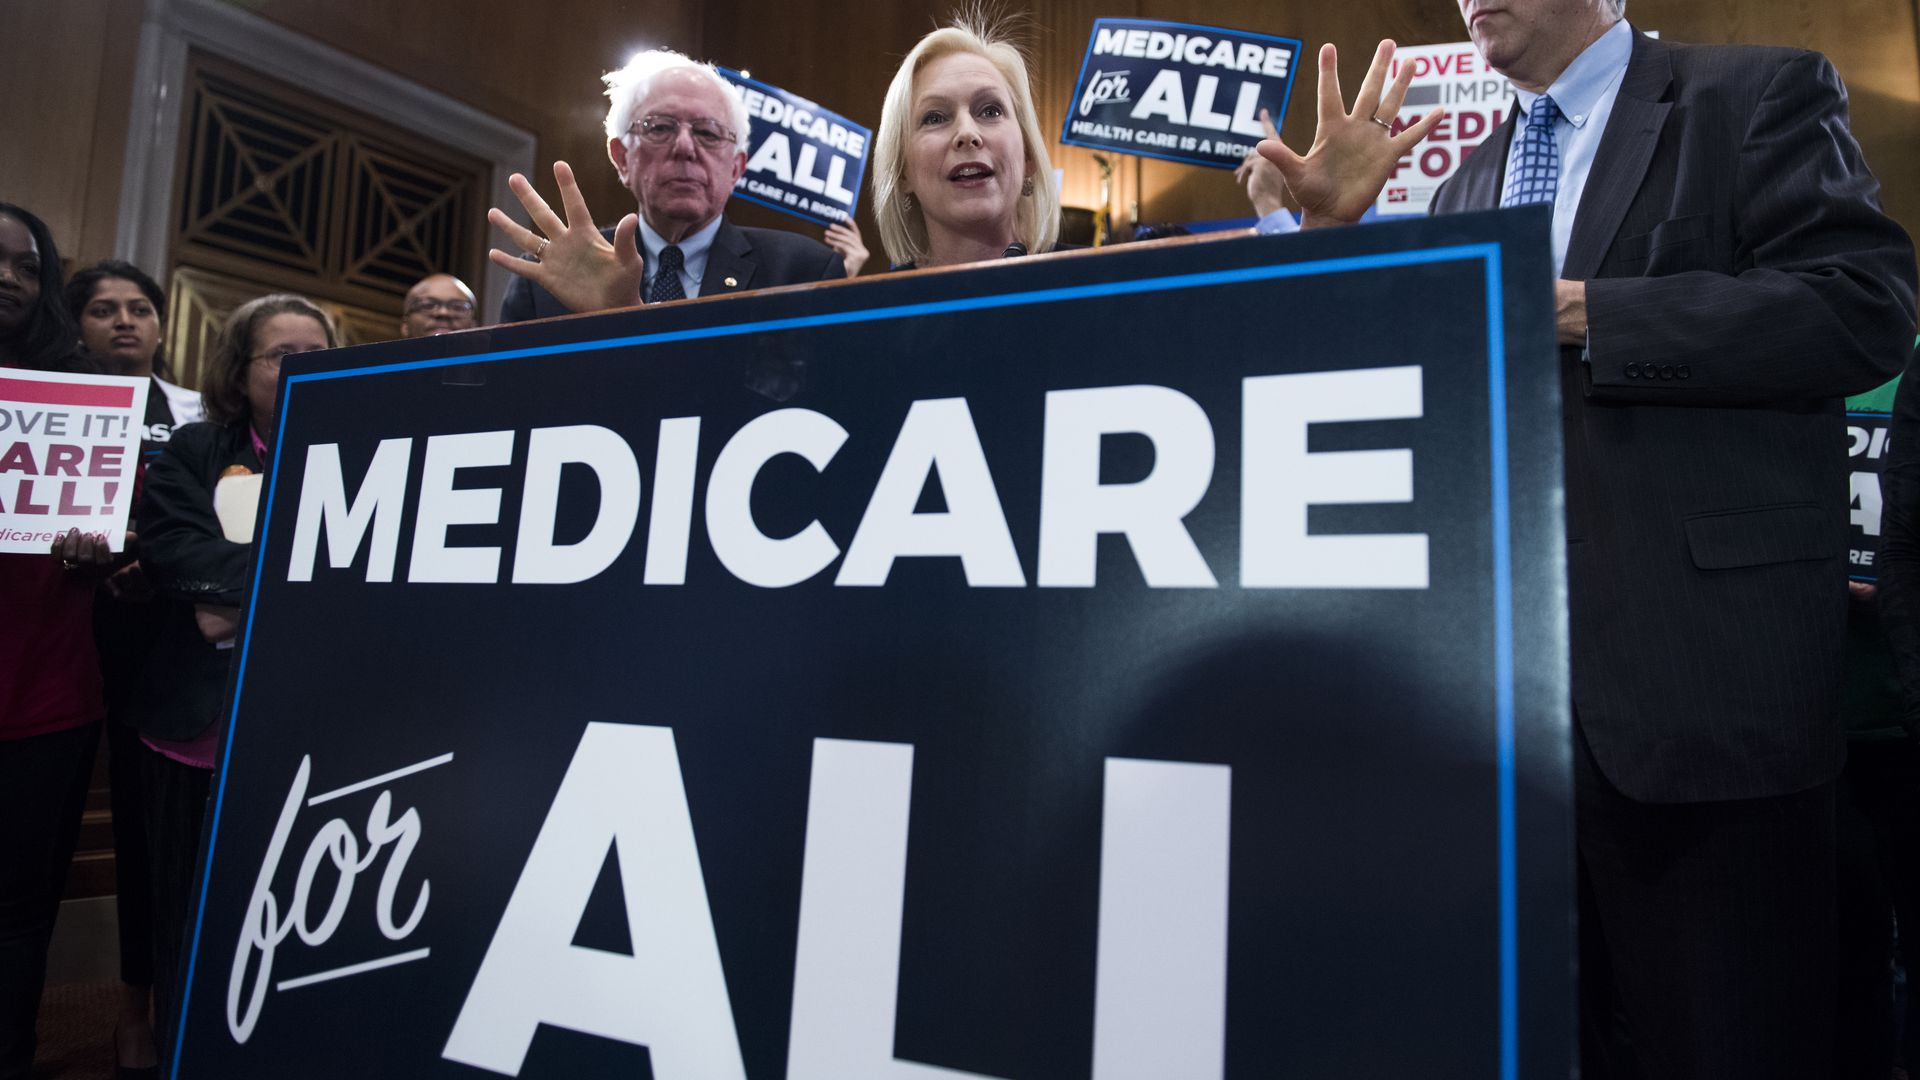 Kirsten Gillibrand ans Bernie Sanders standing behind a medicare for all sign